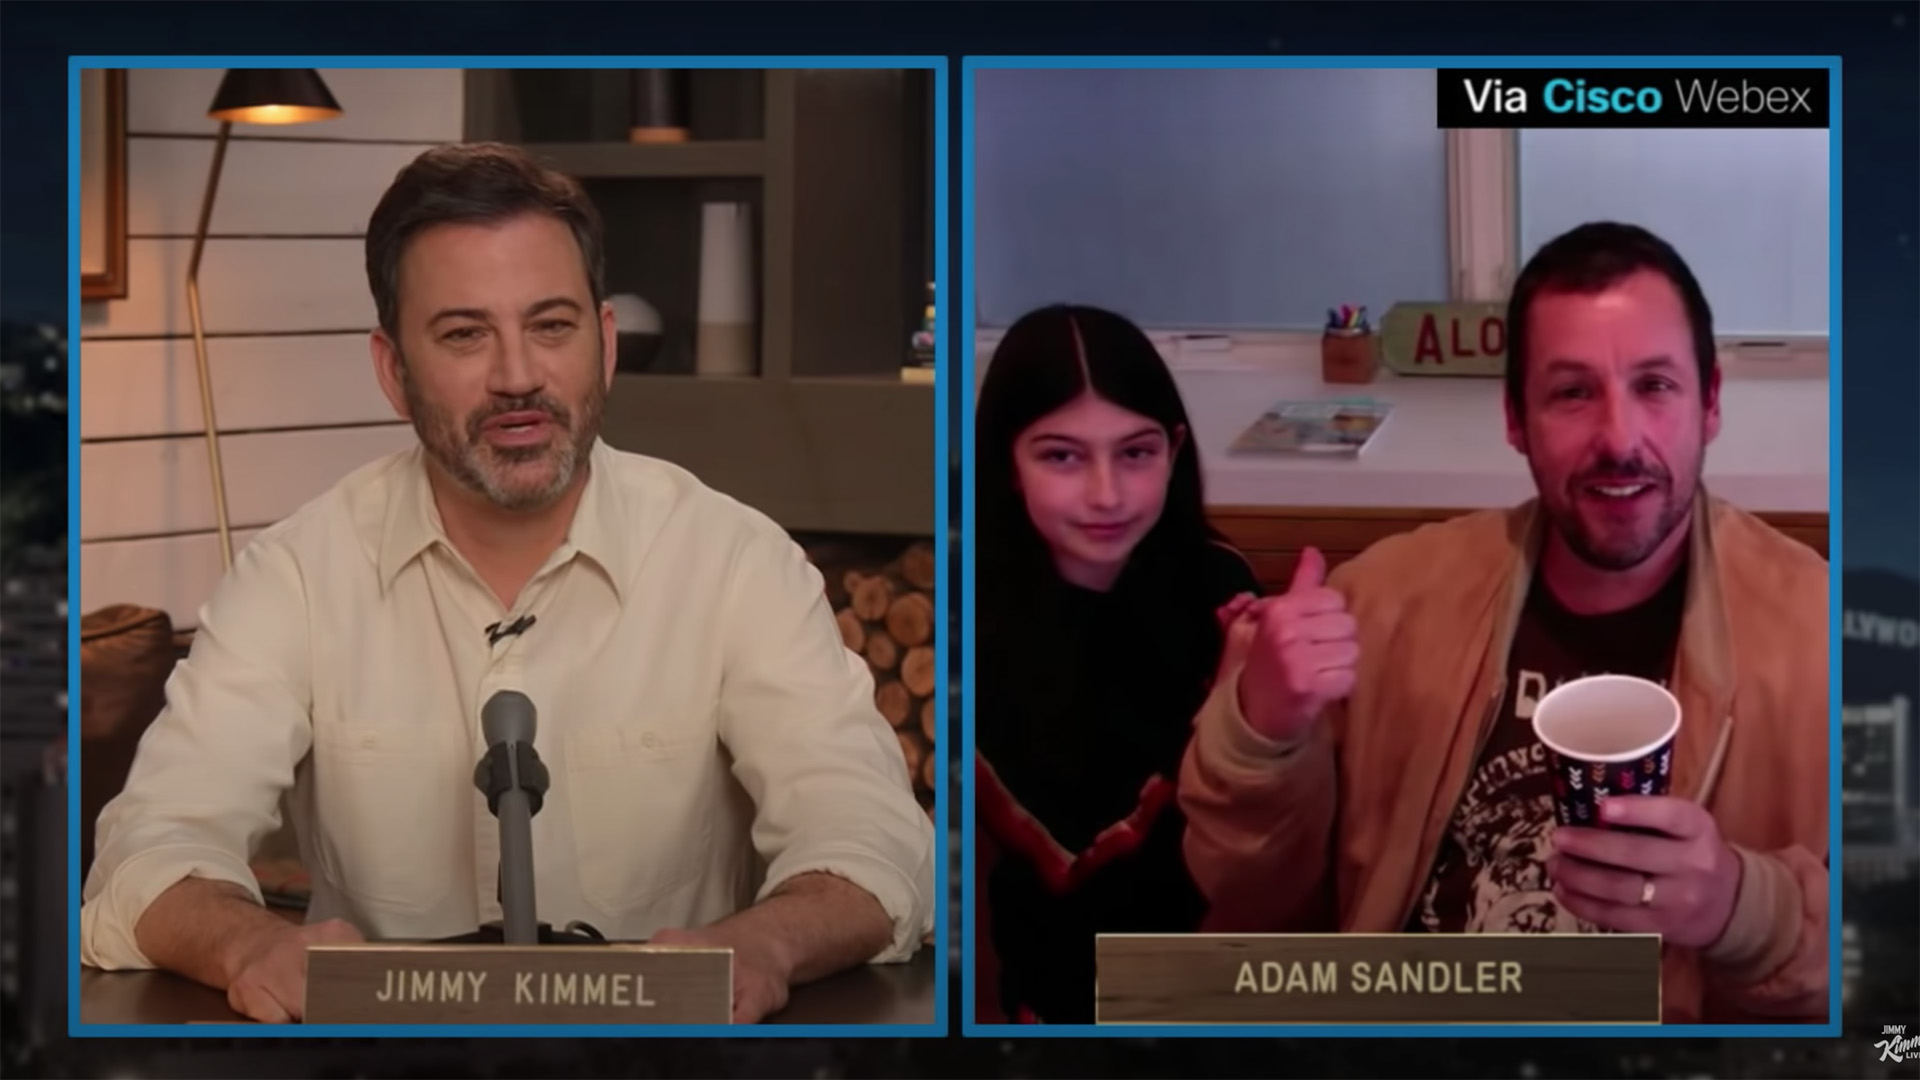 Adam Sandler S Daughter Adorably Crashes The Start Of His Interview With Jimmy Kimmel